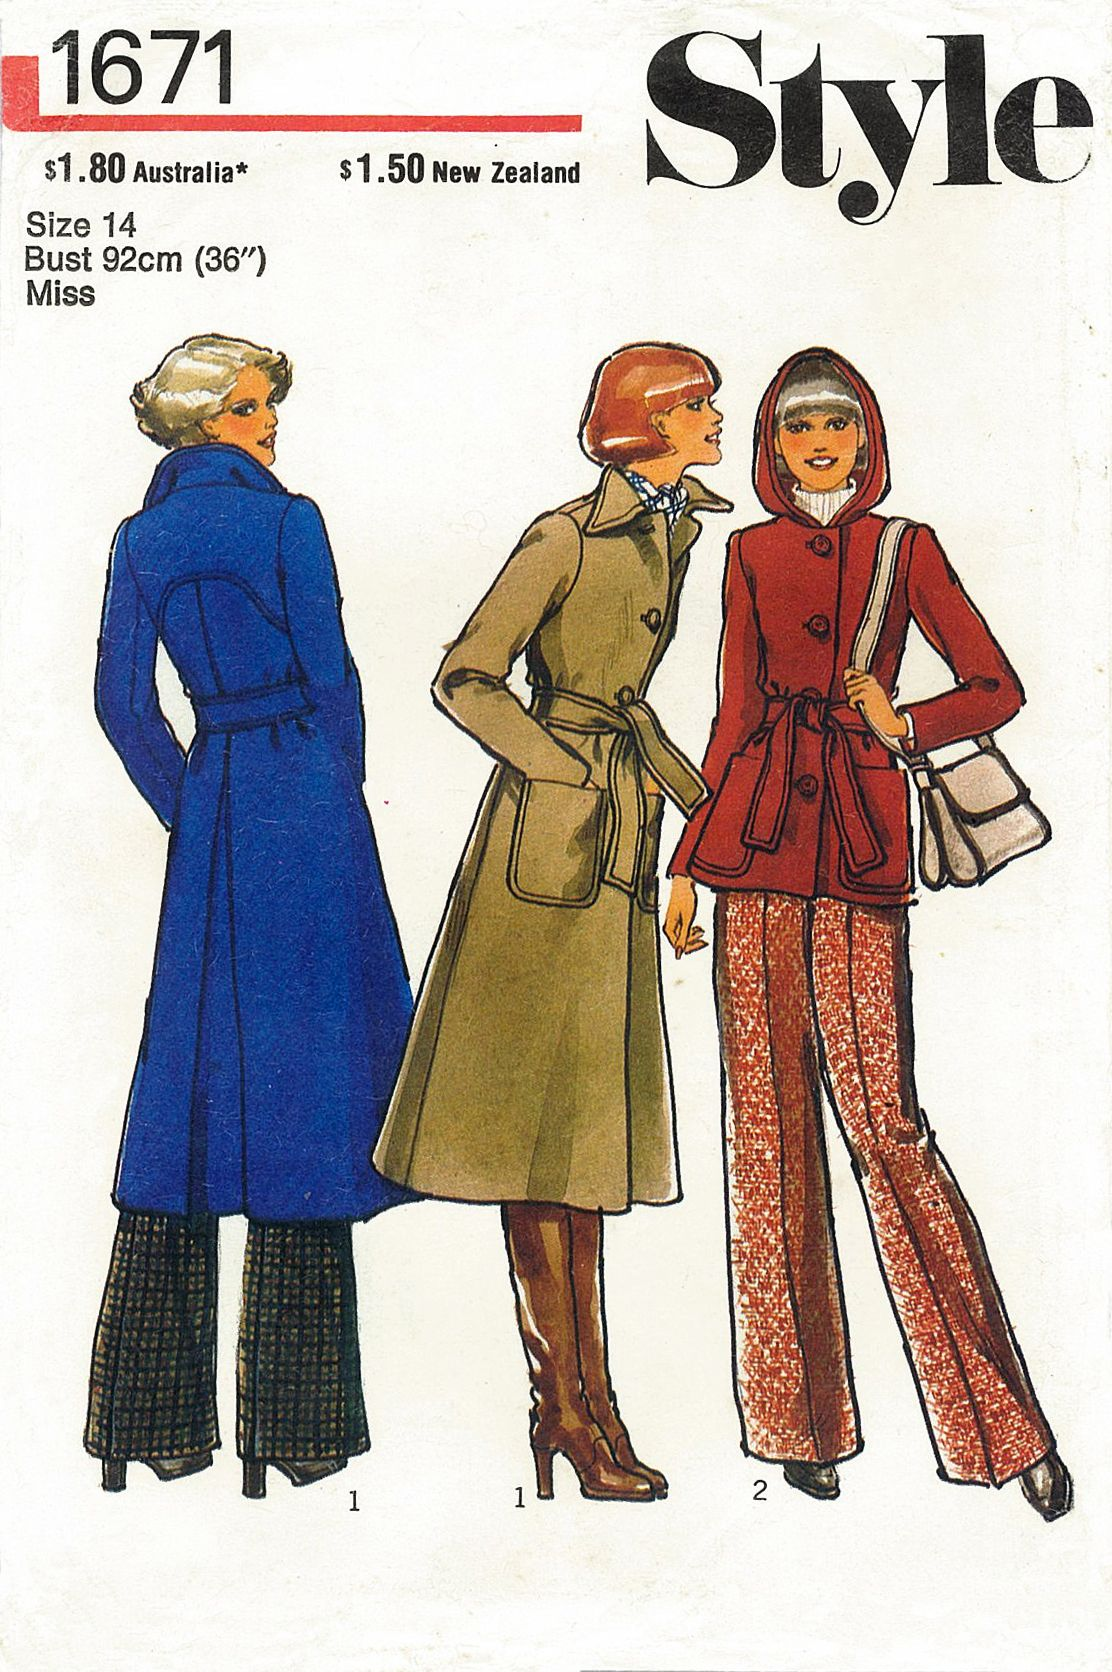 Vintage Sewing Pattern 50s Fitted Jacket 1950s Women/'s Jacket Sewing Pattern McCall 8101 Complete